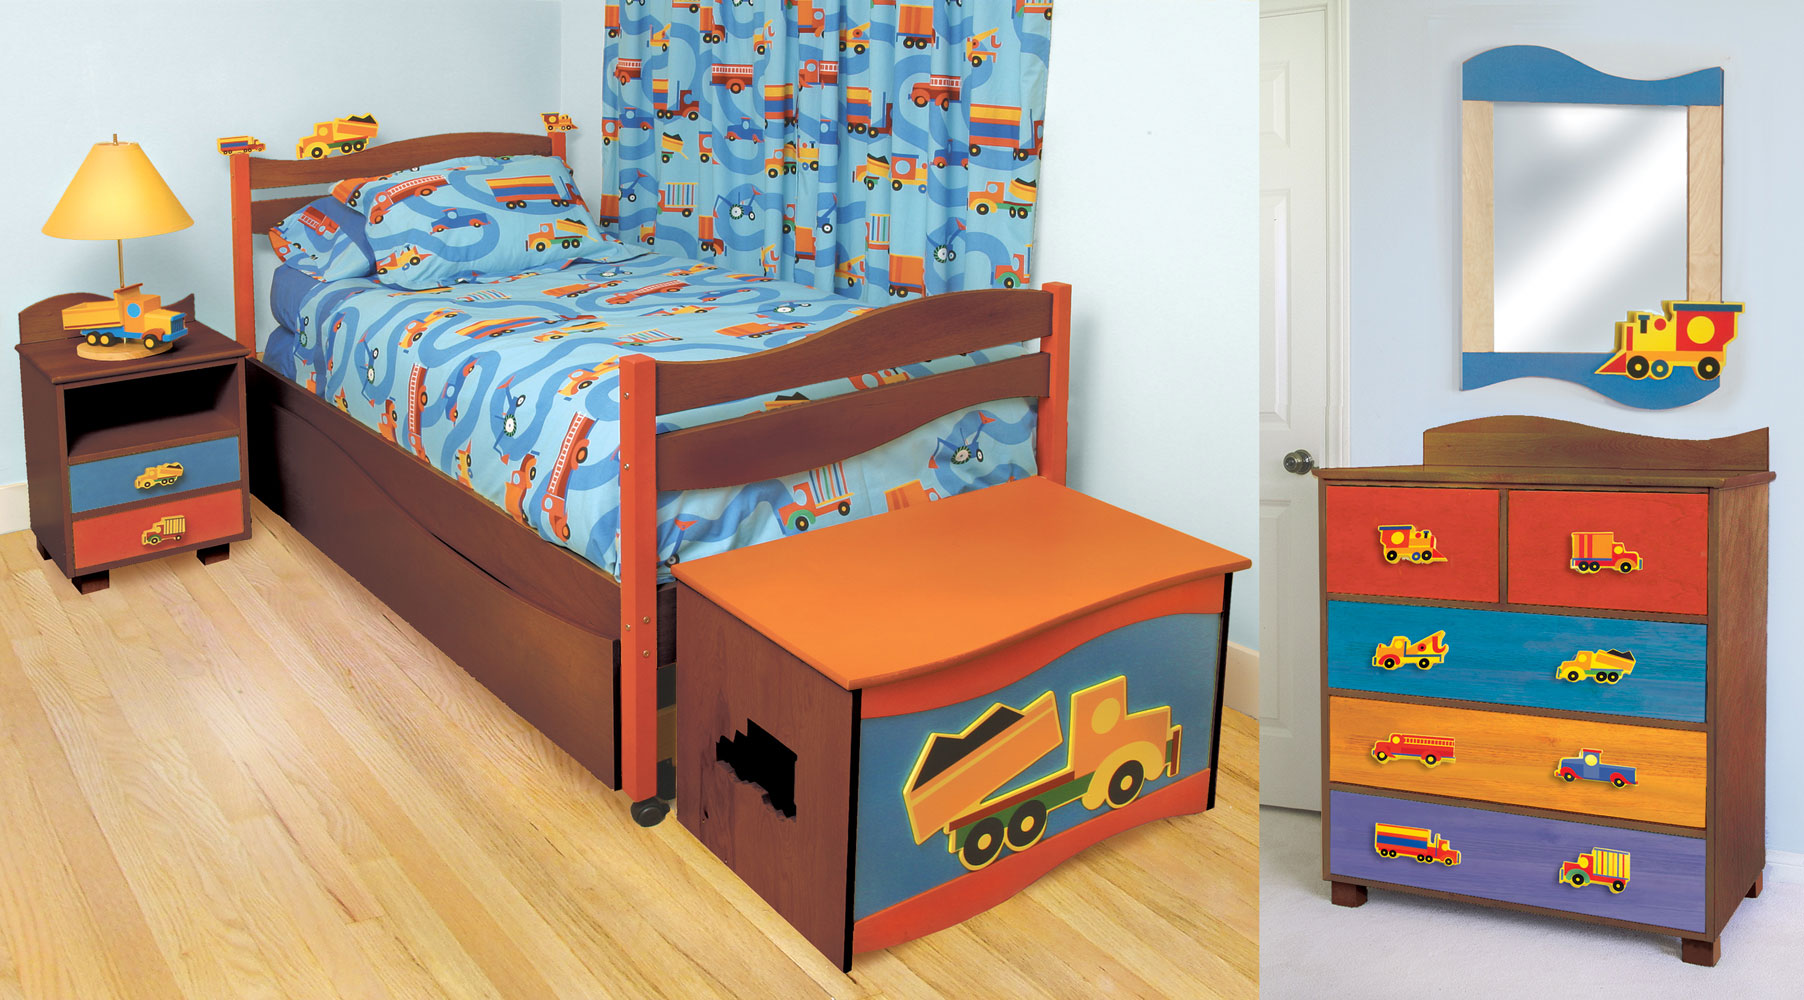 Youth Boy Bedroom Furniture Picture Ideas With Furniture Bedroom Macys. Youth Bedroom Furniture For Boys